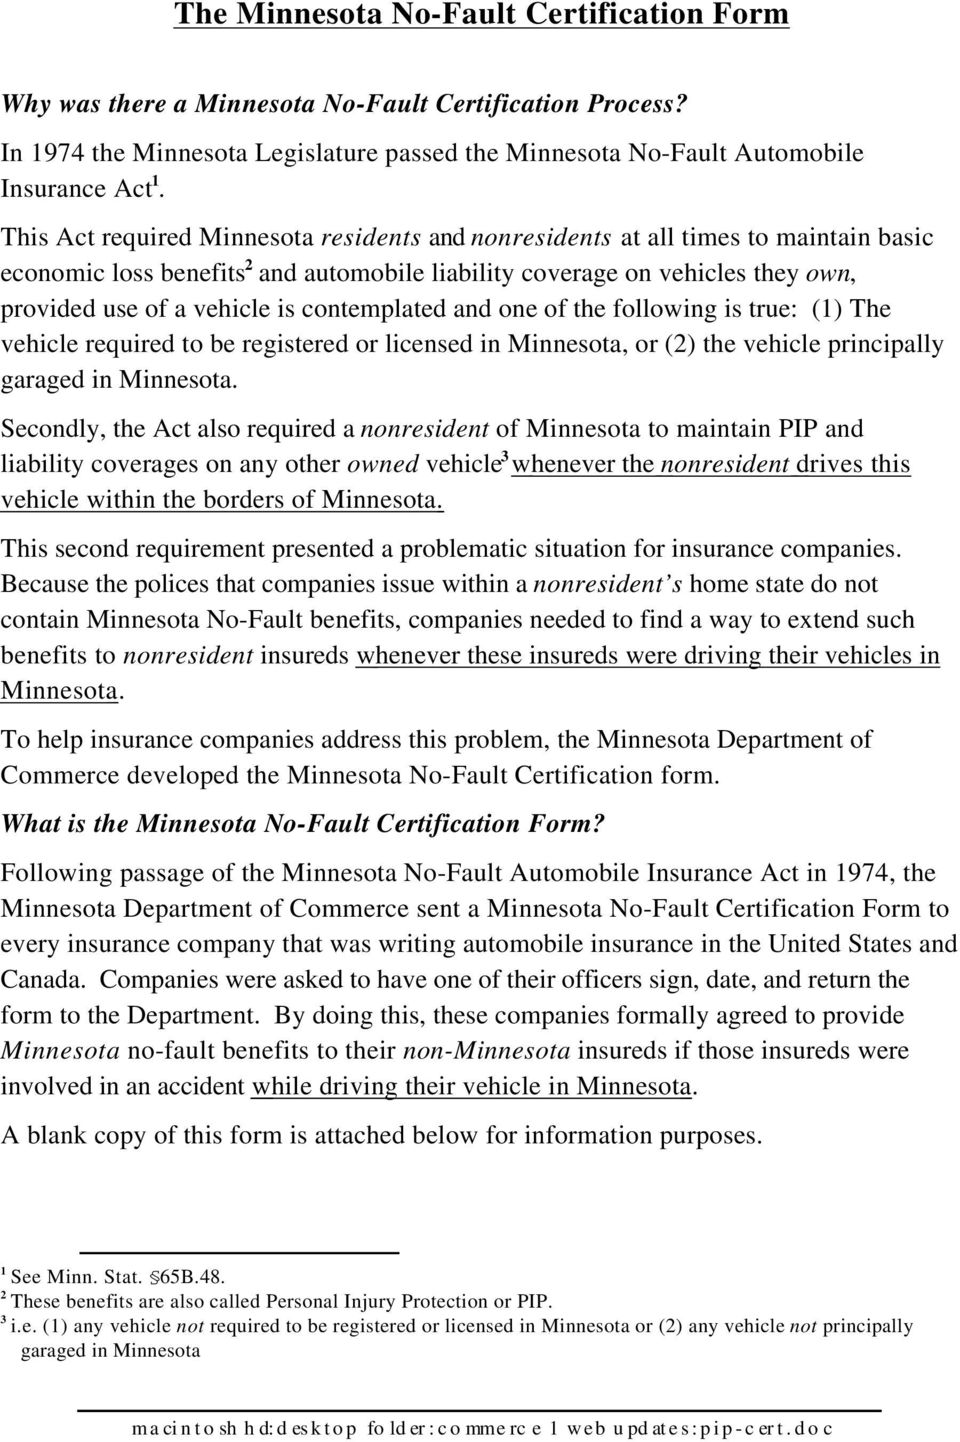 contemplated and one of the following is true: (1) The vehicle required to be registered or licensed in Minnesota, or (2) the vehicle principally garaged in Minnesota.